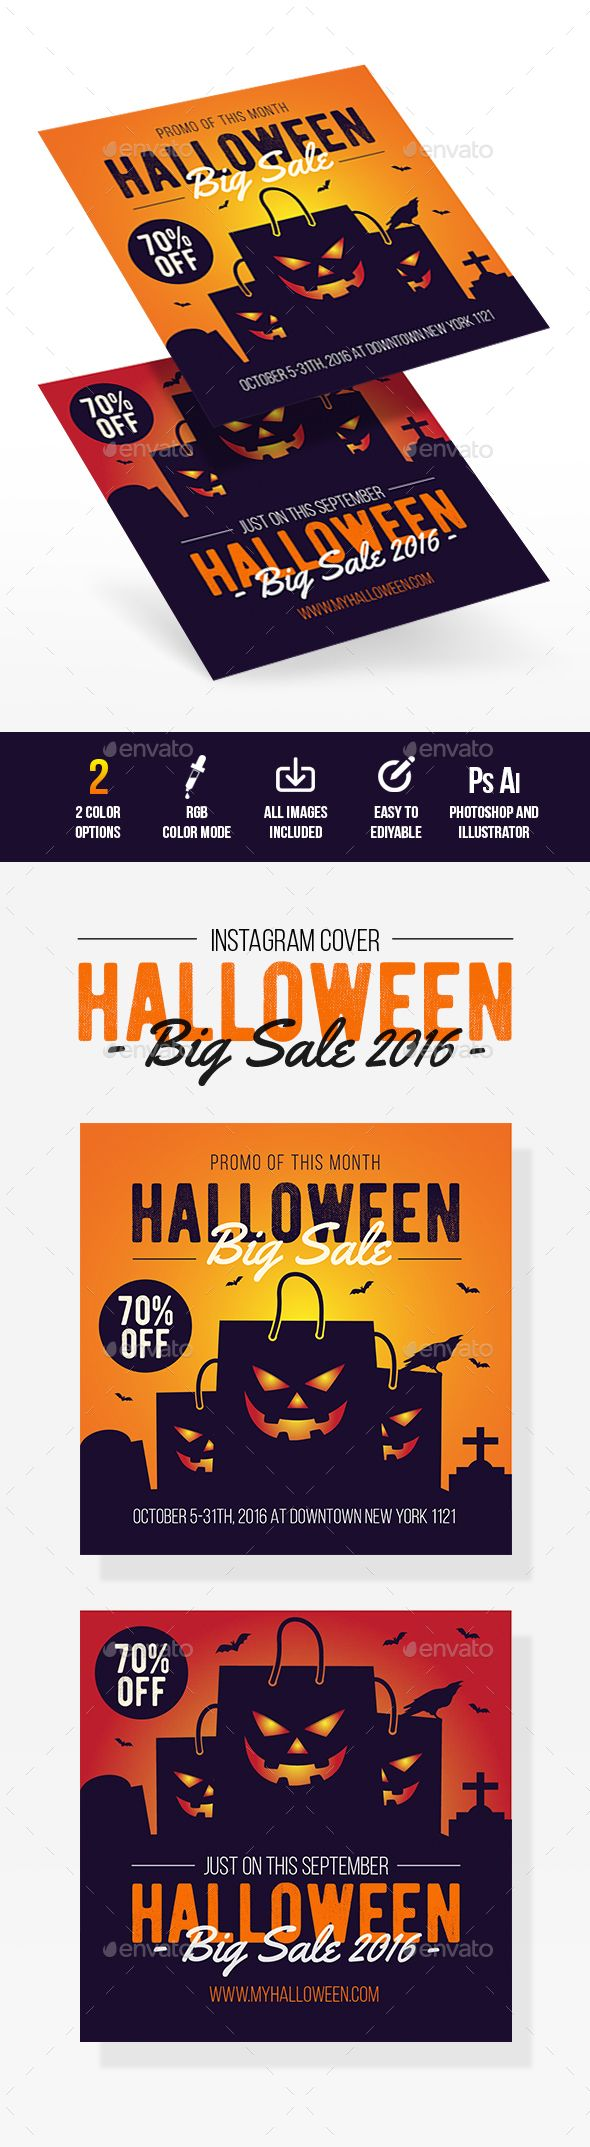 Halloween Sale Instagram Cover  — PSD Template #900x900 #template • Download ➝ https://graphicriver.net/item/halloween-sale-instagram-cover/18178065?ref=pxcr